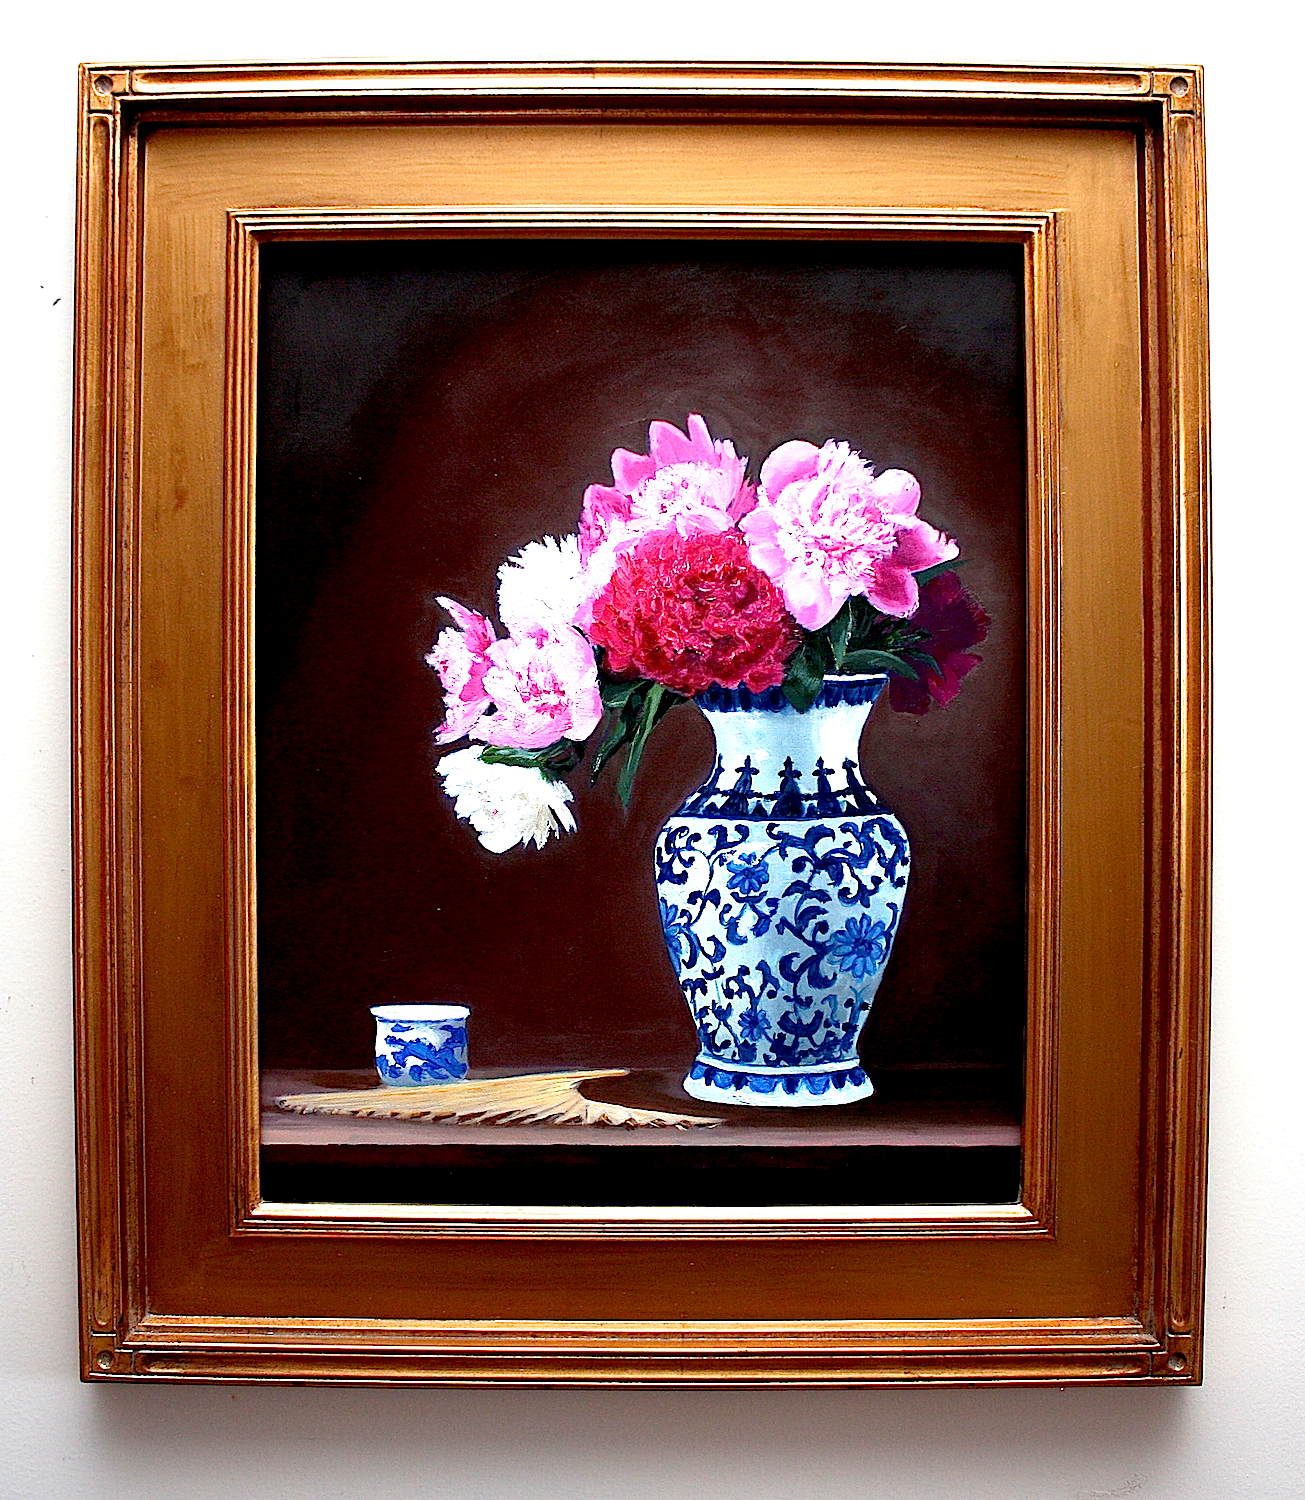 Peonies, Teacup, Fan & Chinese Vase, oil painting by Gray Jacobik